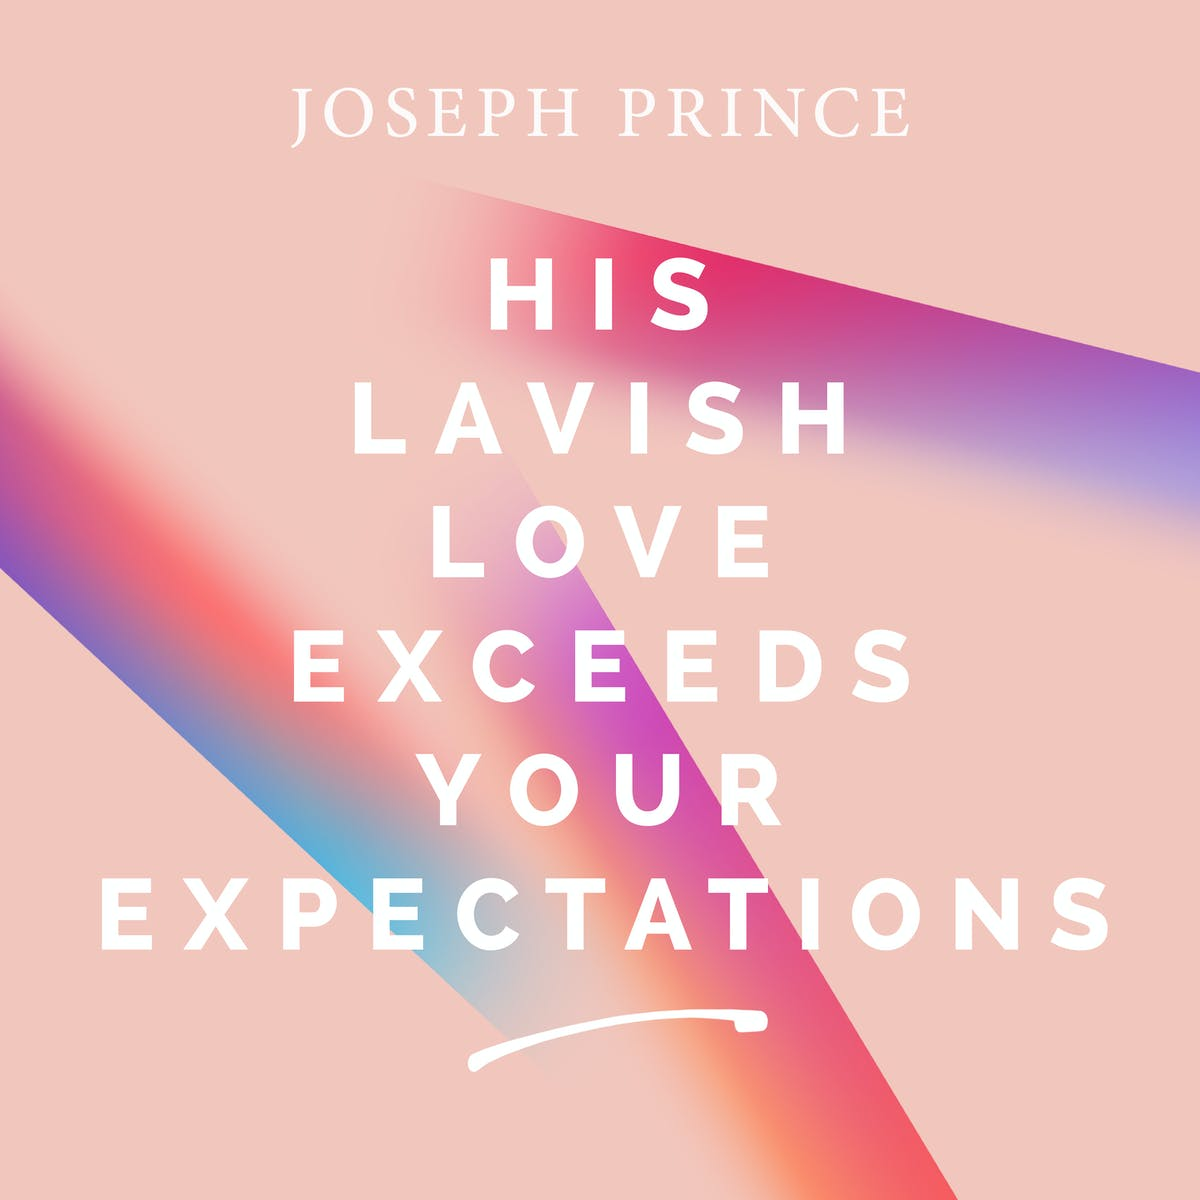 His Lavish Love Exceeds Your Expectations | Official Joseph